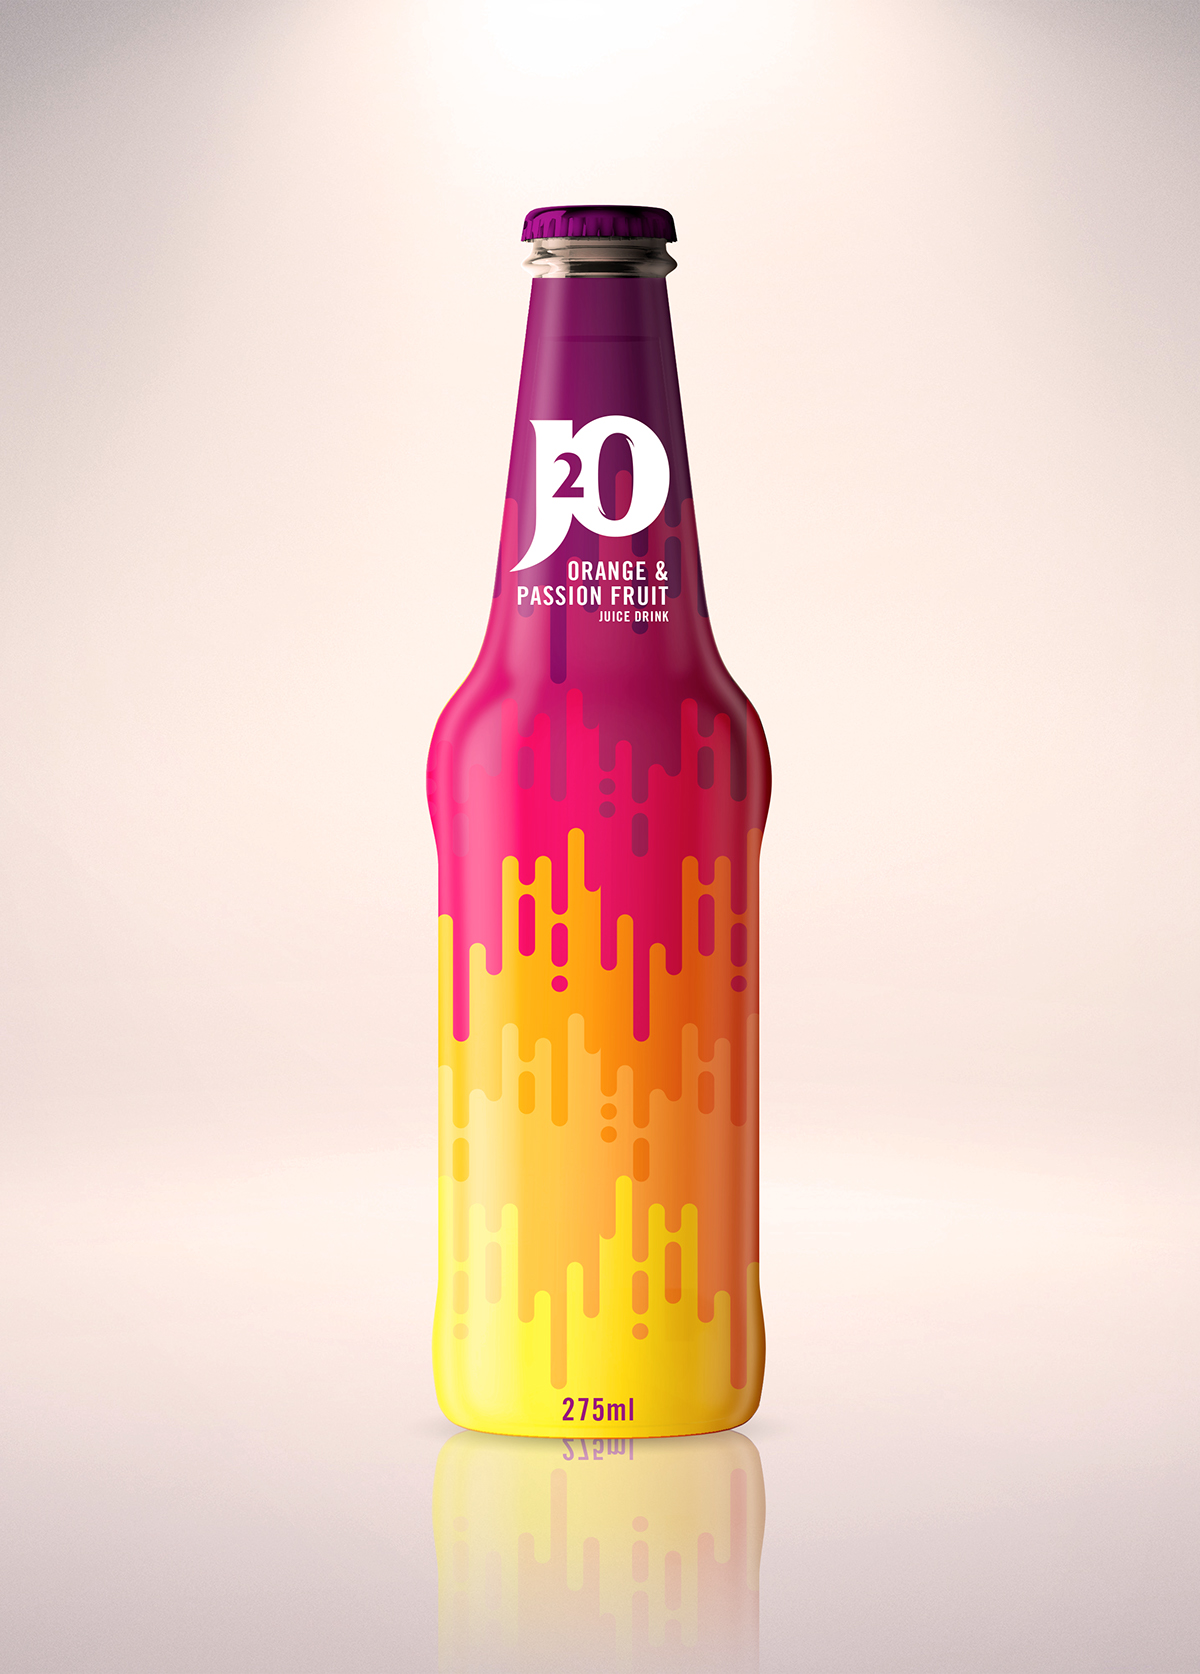 j20 packaging design